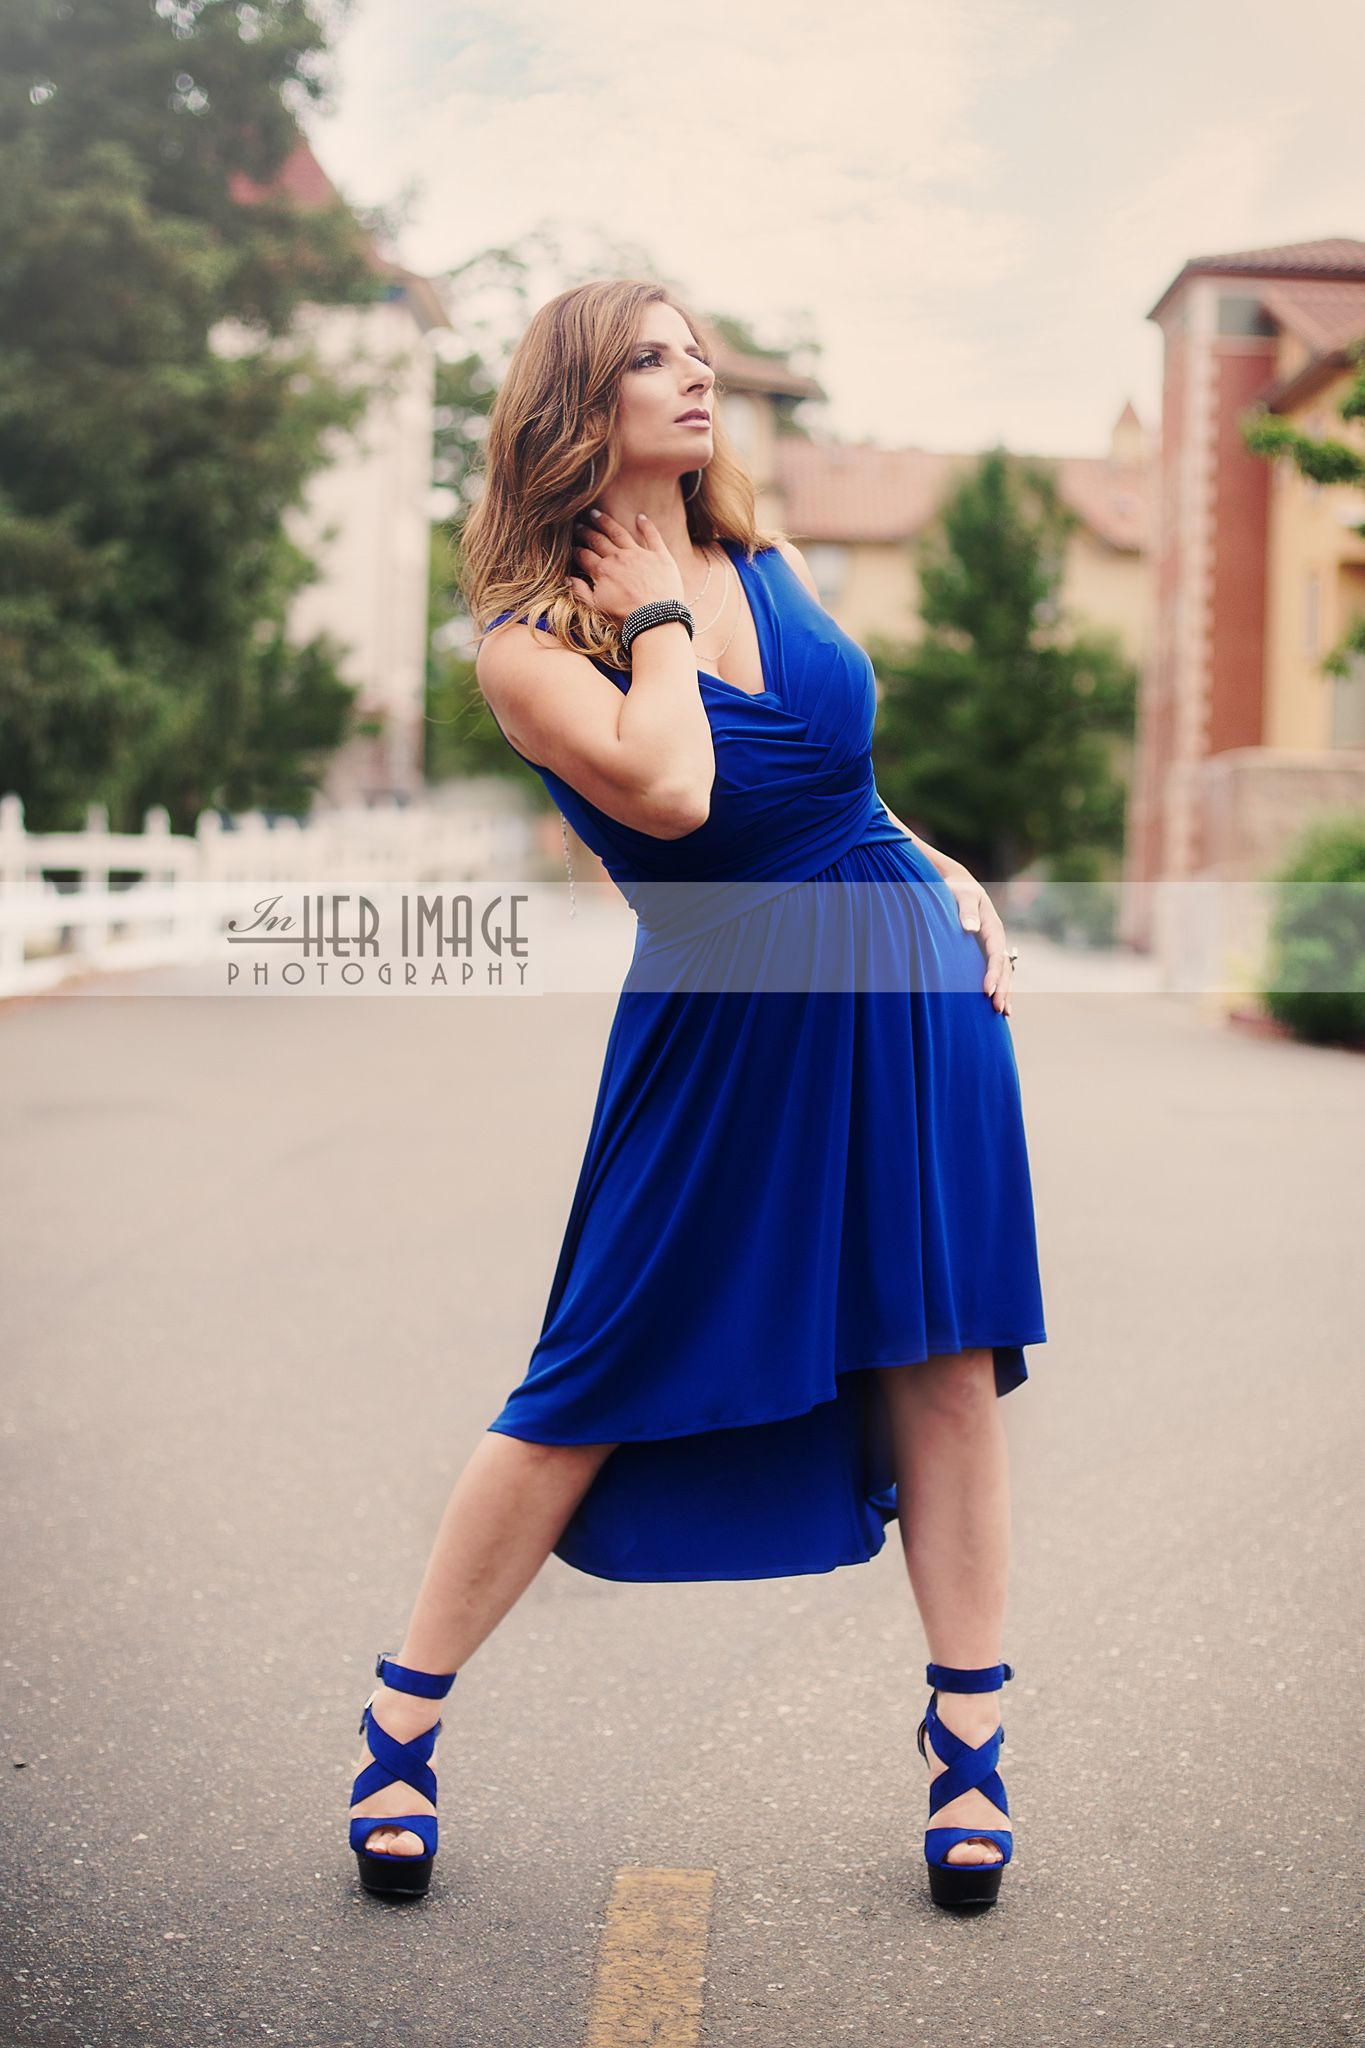 www.inherimagephoto.com Copyright In Her Image Photography 2014 All Rights Reserved  #fierce #blue dress #blue #gorgeous #goddess #pose #portrait #gorgeous #shoes #blue shoes #heels #blue heels #beautiful